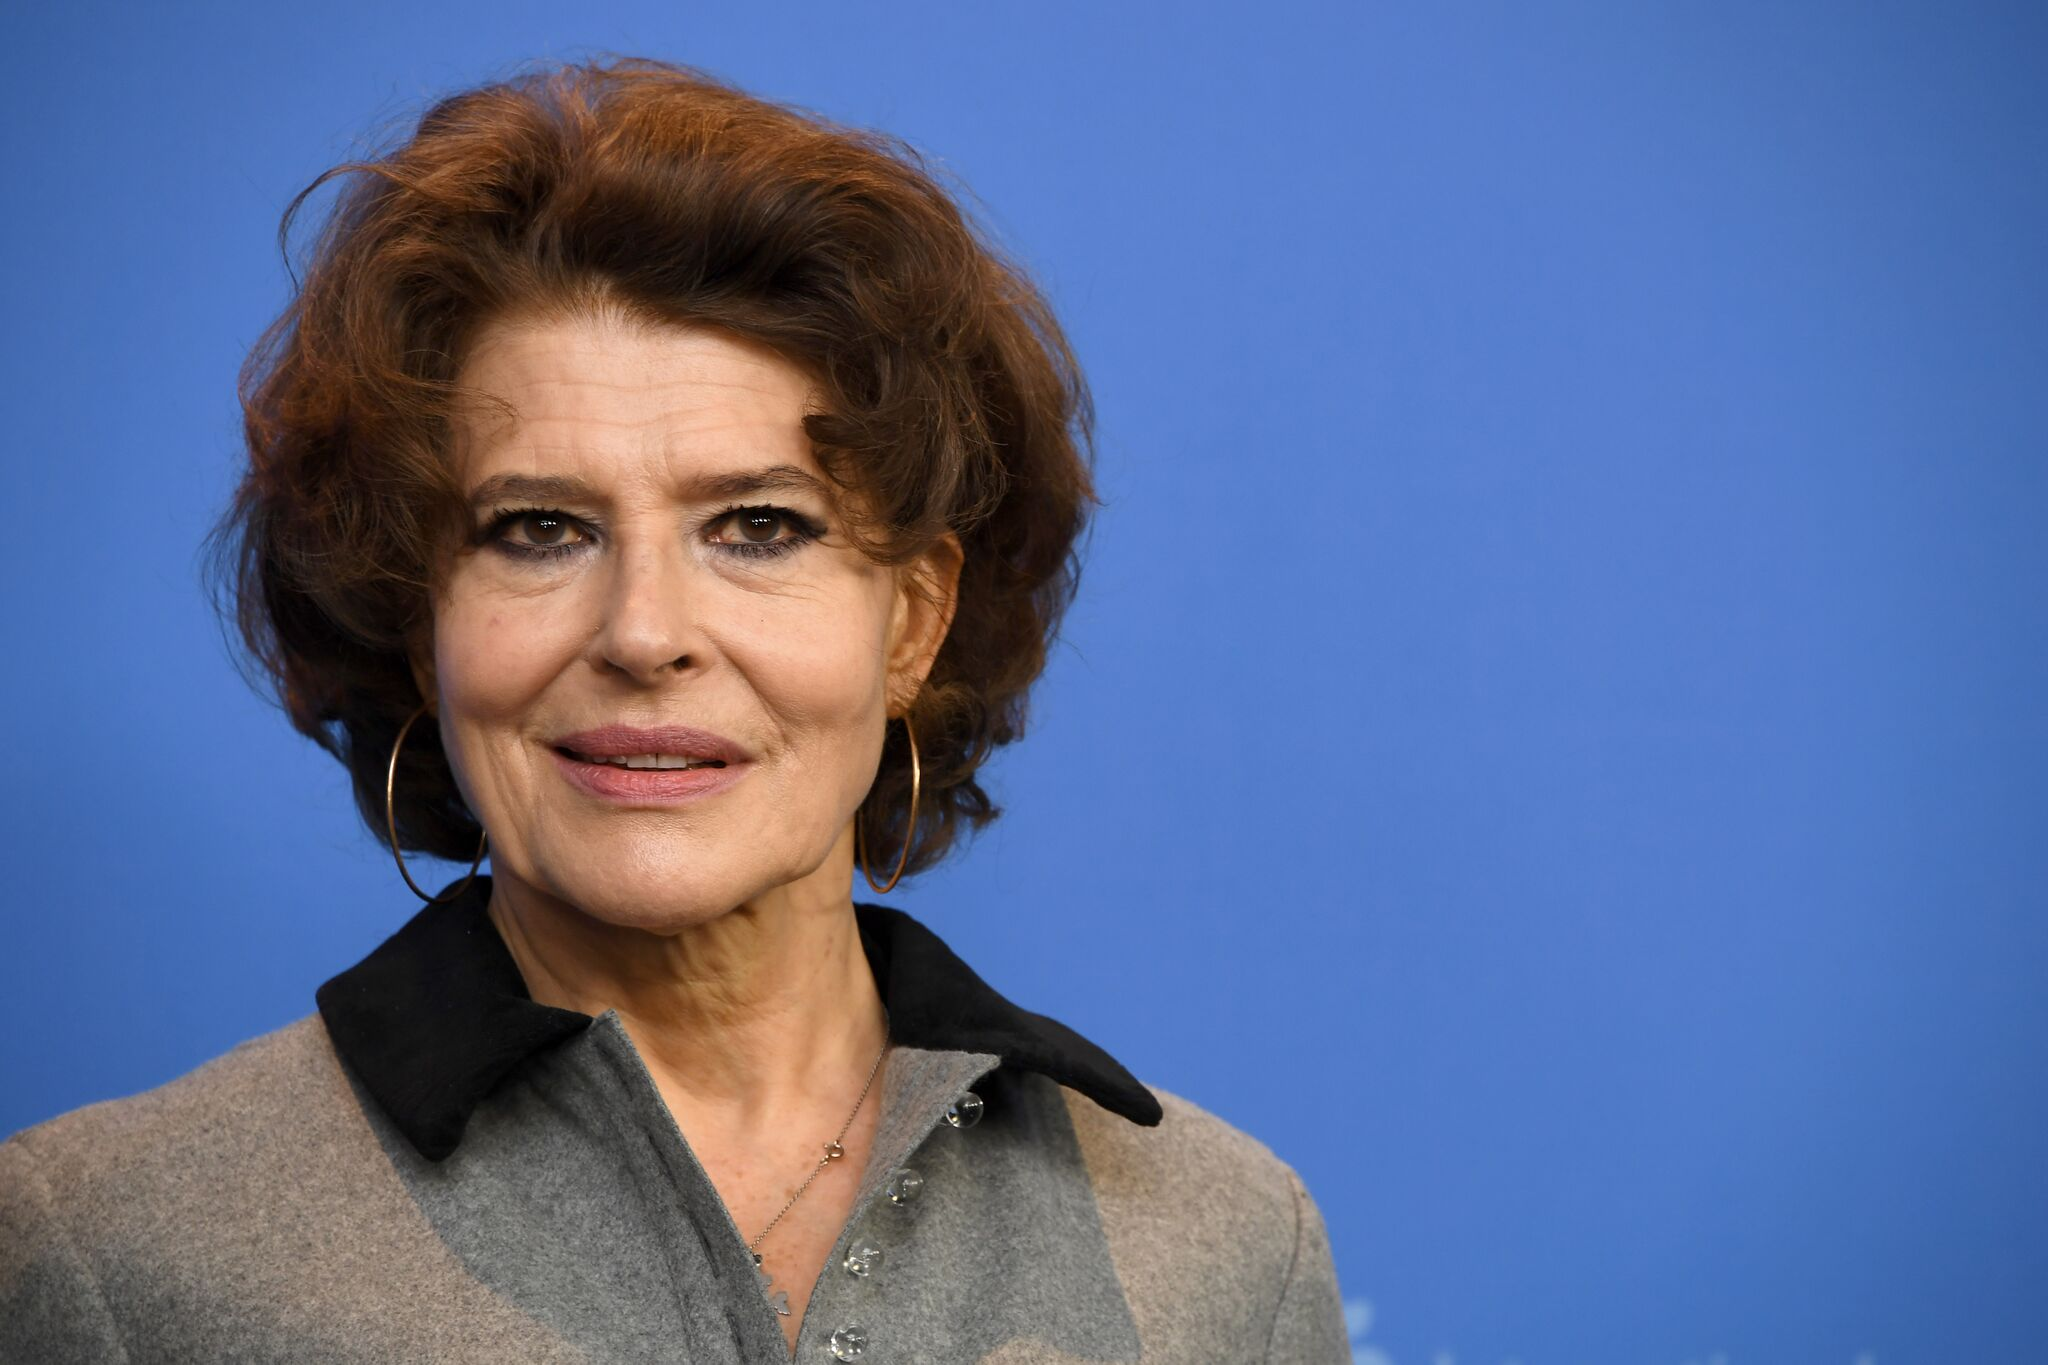 La comédienne Fanny Ardant. l Source: Getty Images